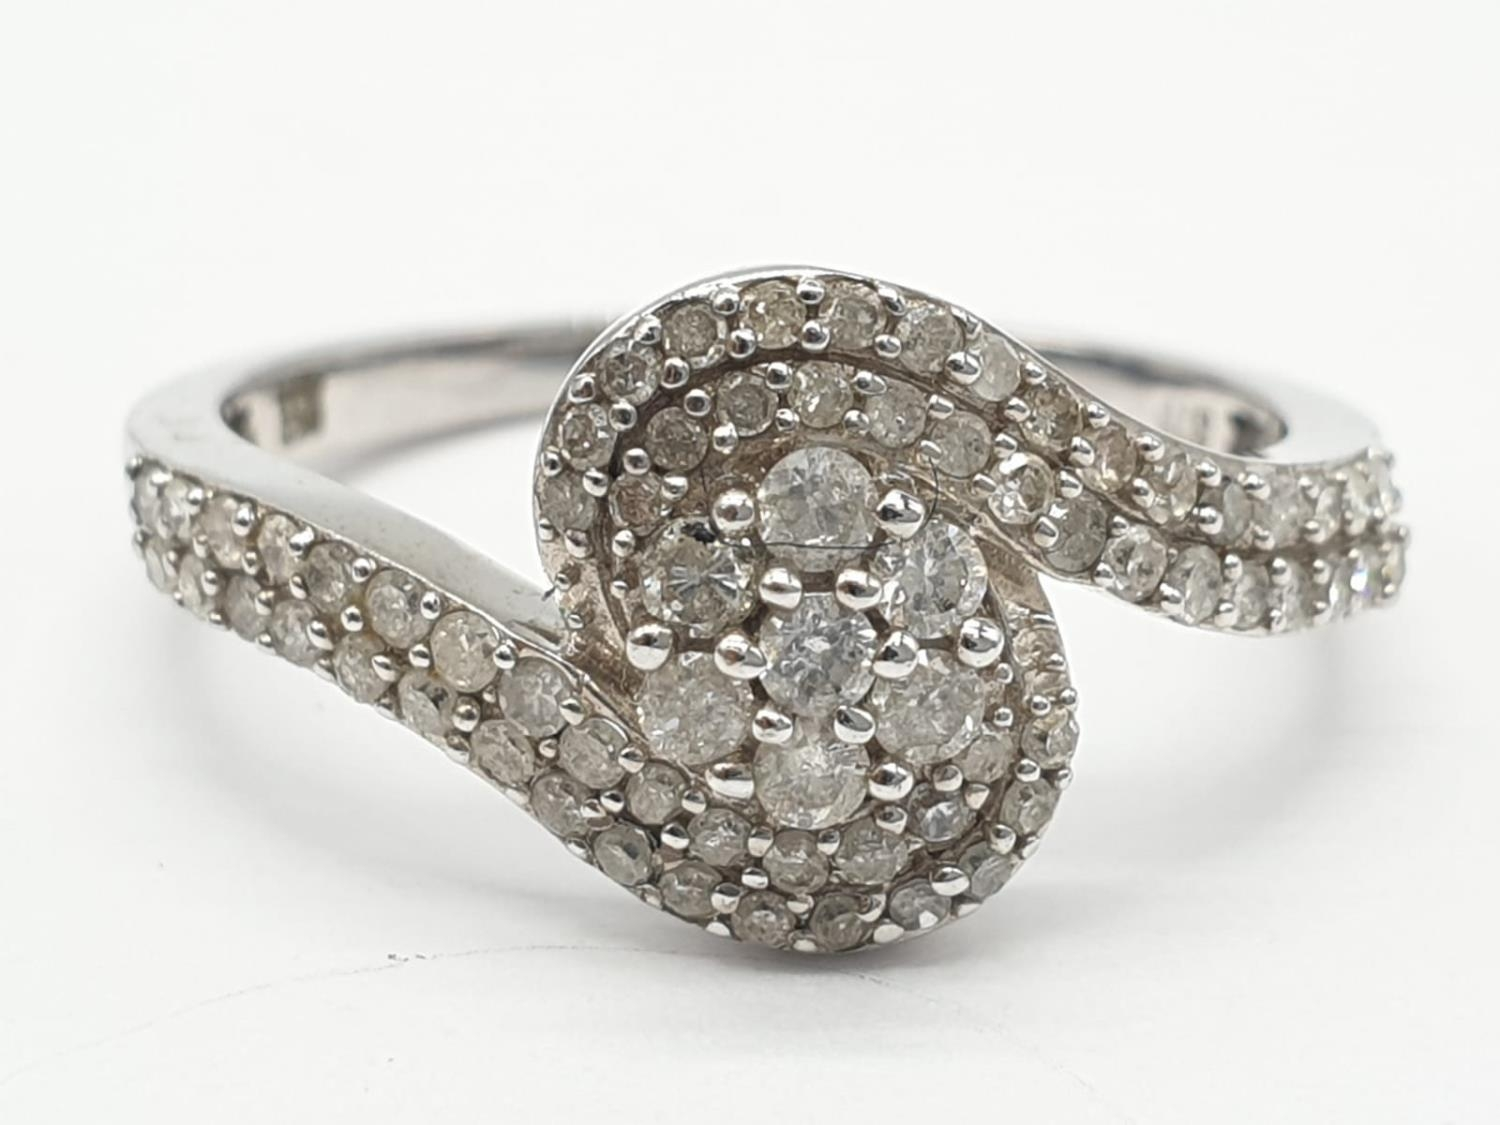 9ct white gold diamond twist cluster ring, 0.50ct diamond approx, weight 2.5g and size P